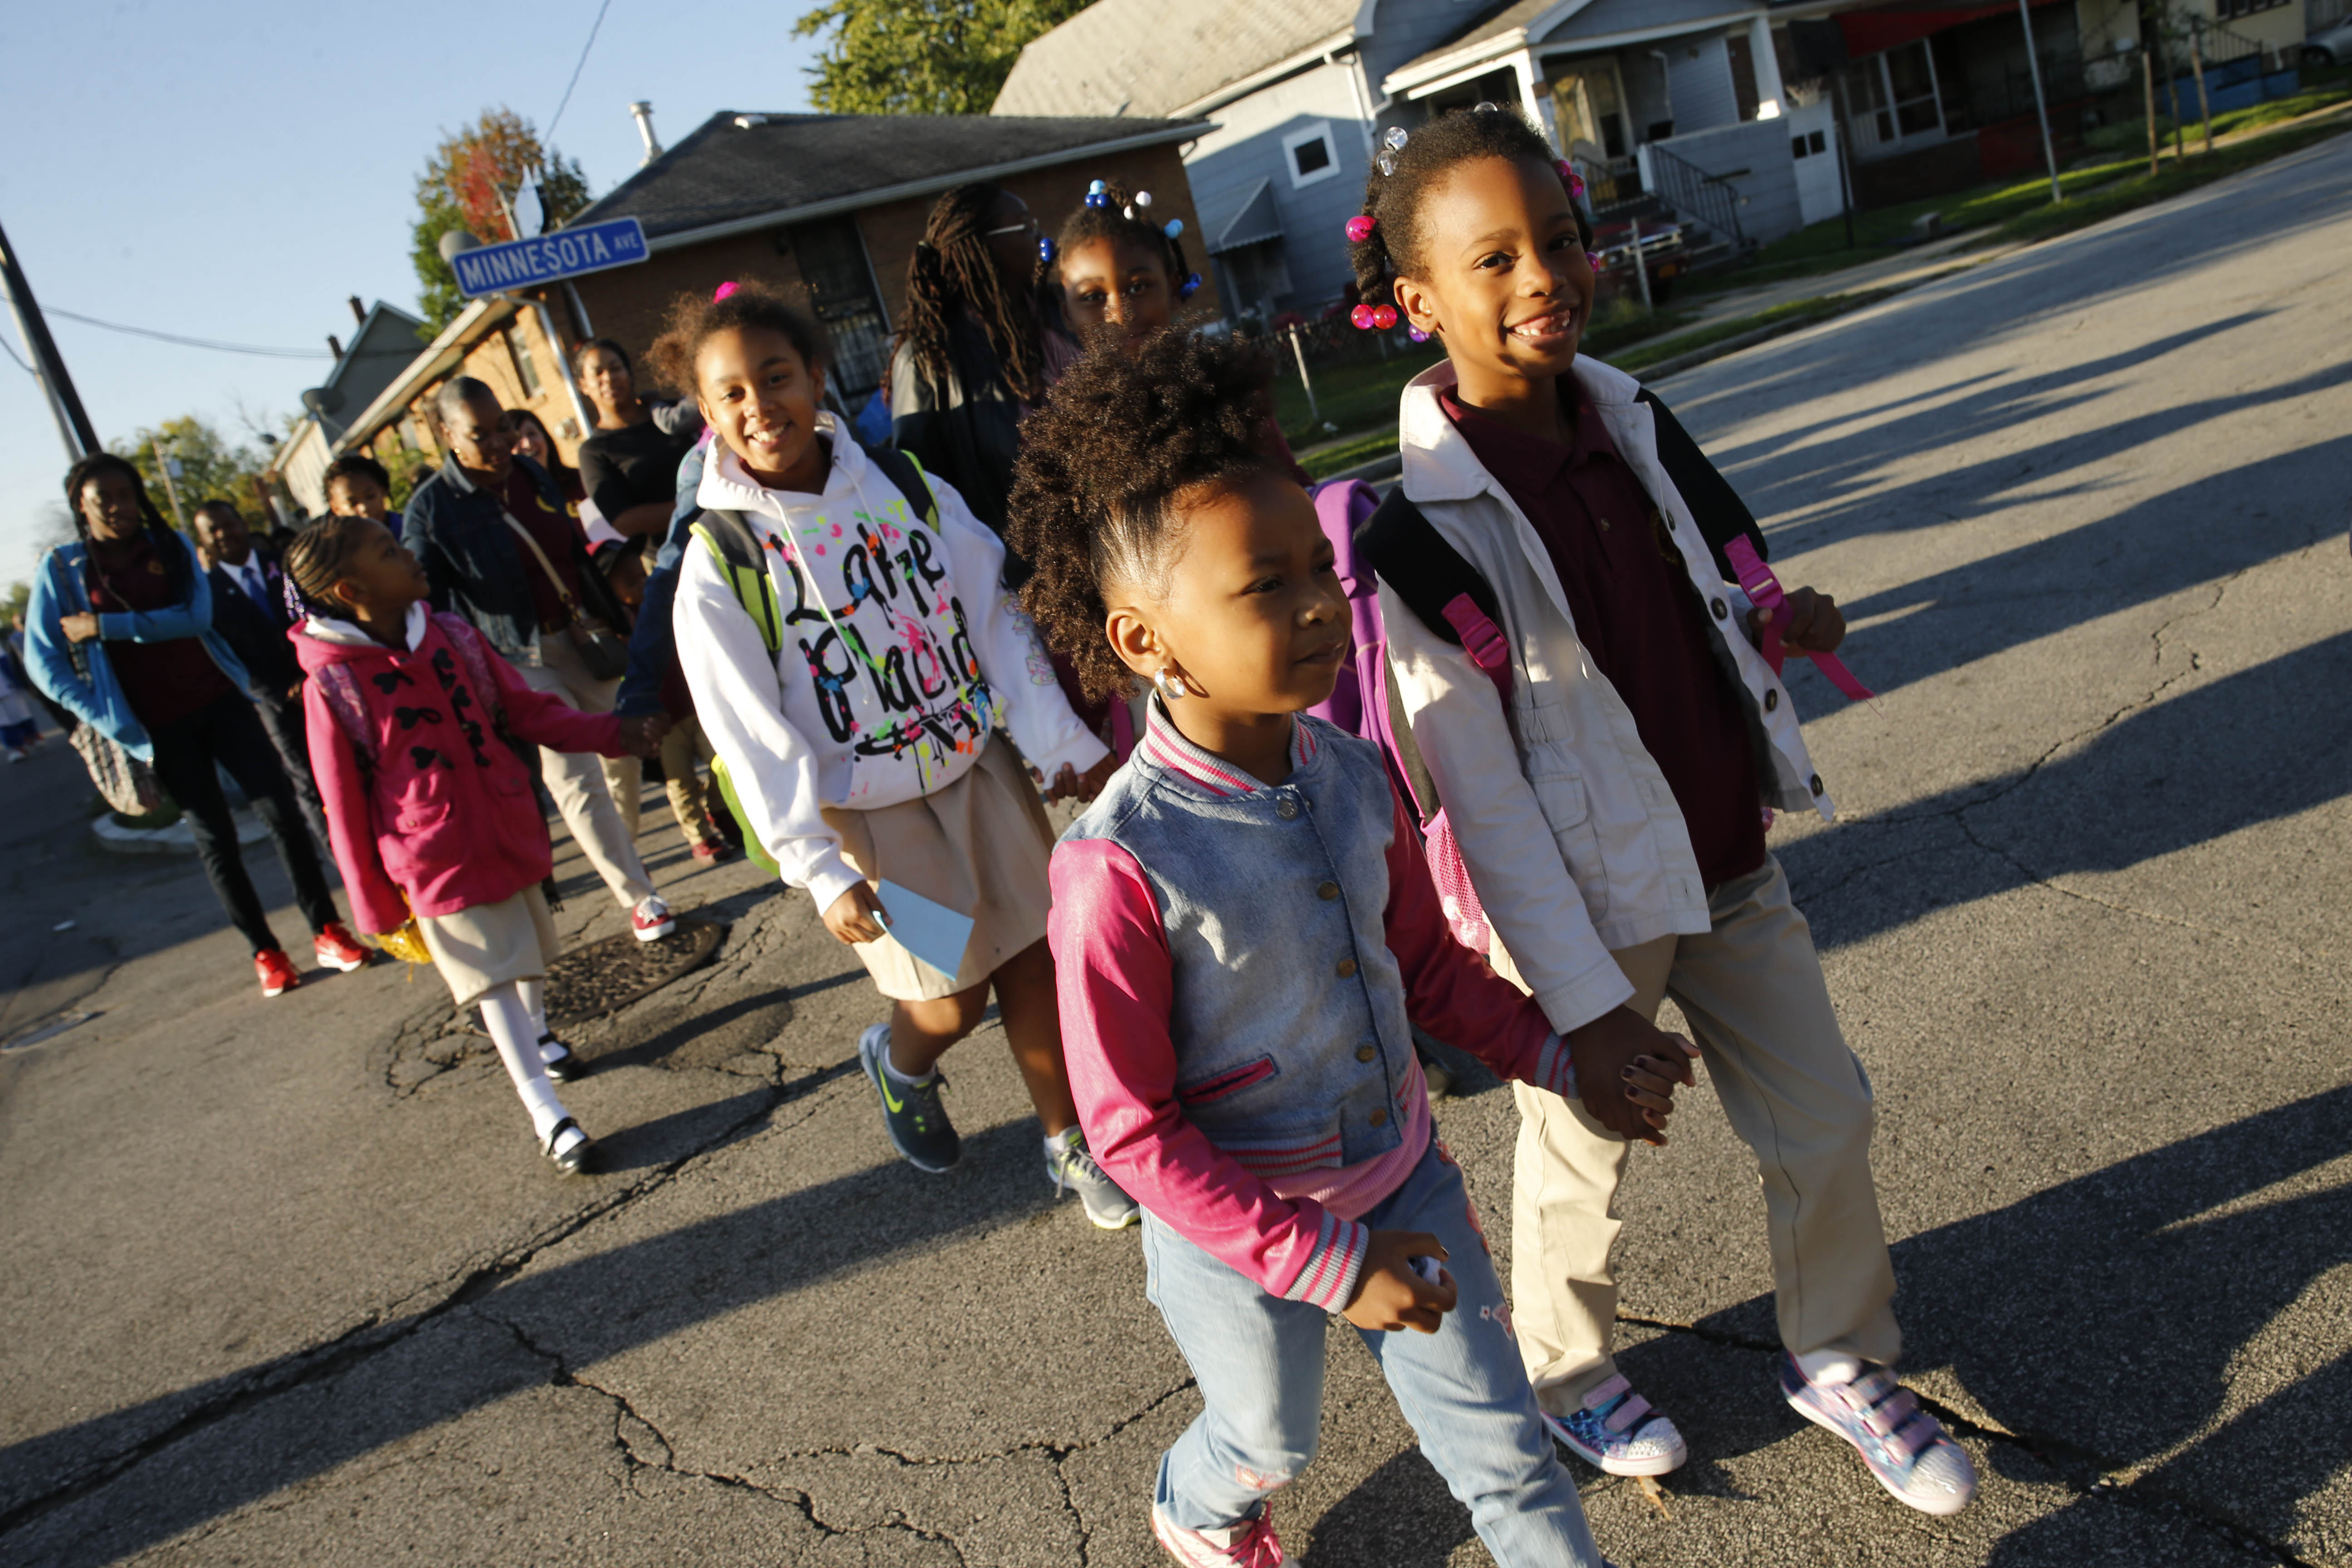 A group of students and faculty from Highgate Heights Elementary School walks down Orleans Street on their way to school as part of National Walk to School Day on Wednesday, Oct. 5, 2016.  (Derek Gee/Buffalo News)